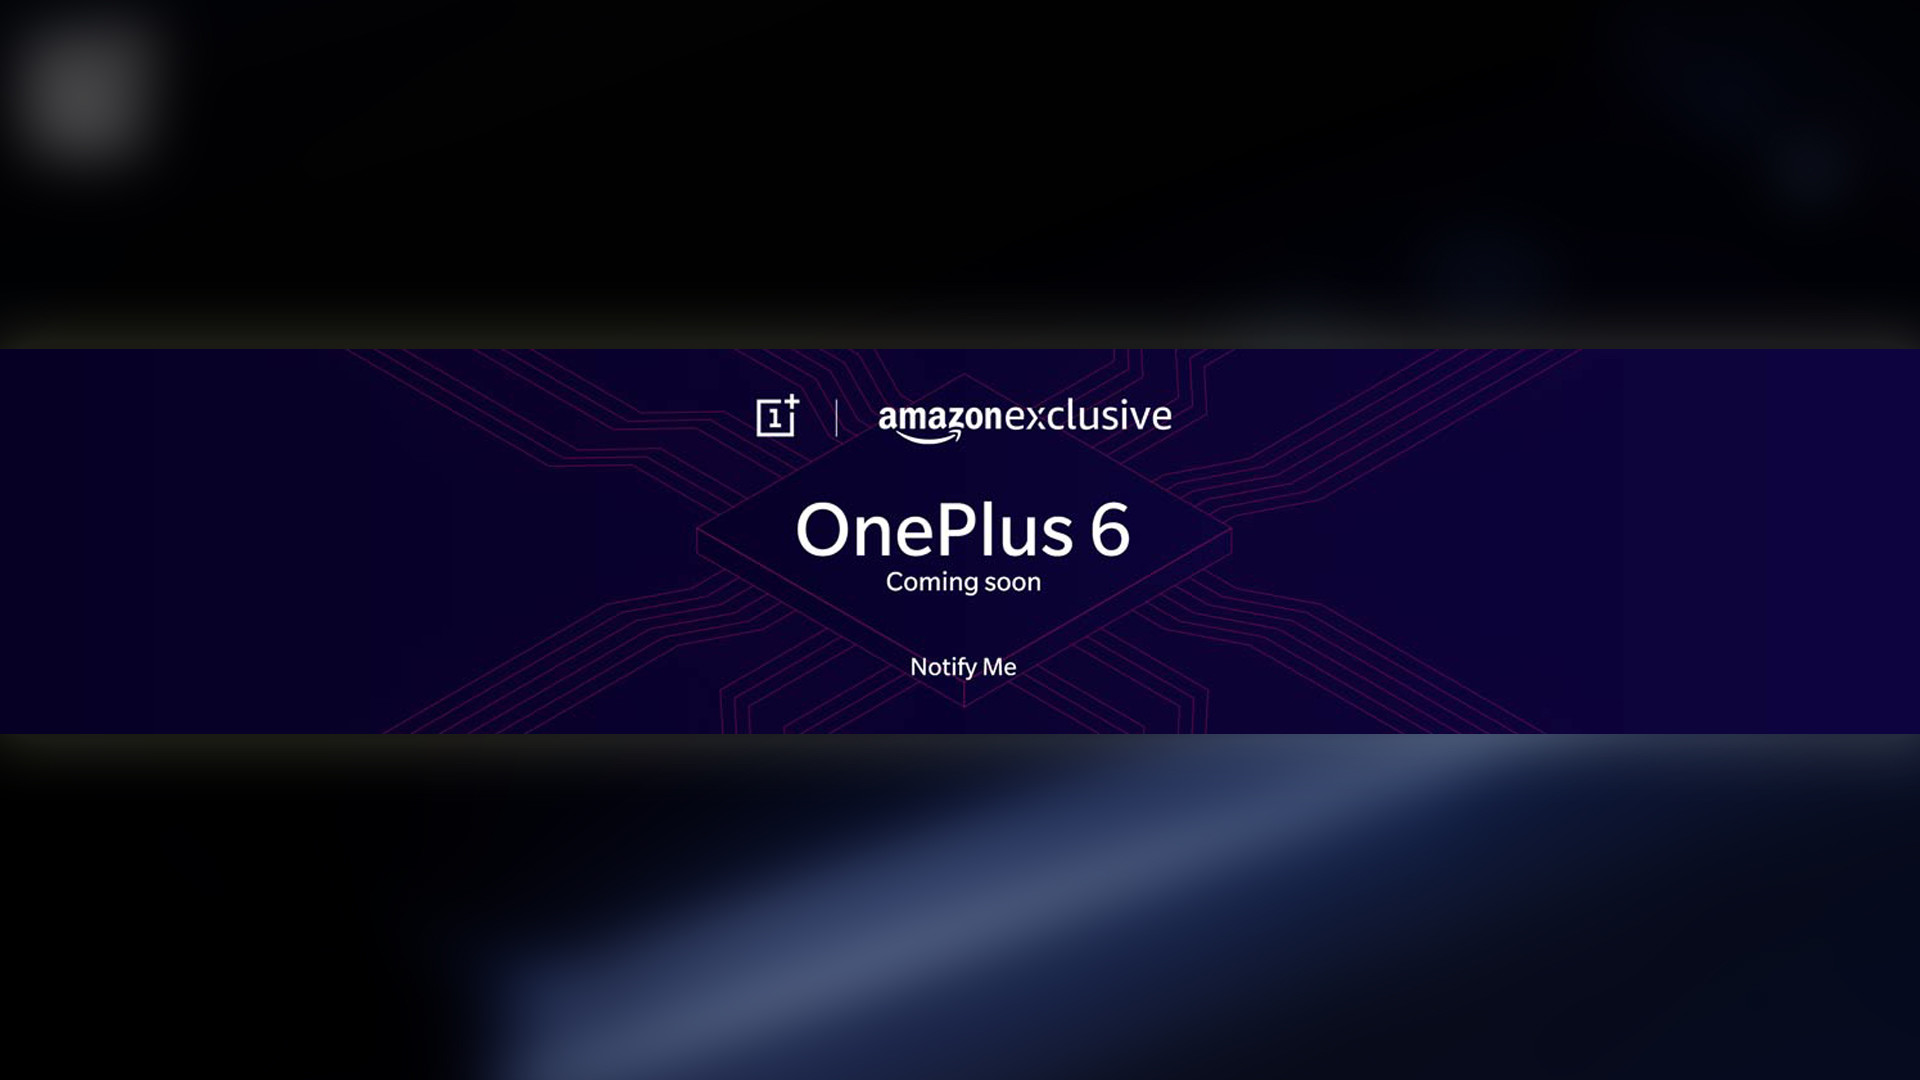 New OnePlus 6 teaser: Android flagship coming with well crafted high-grade shell